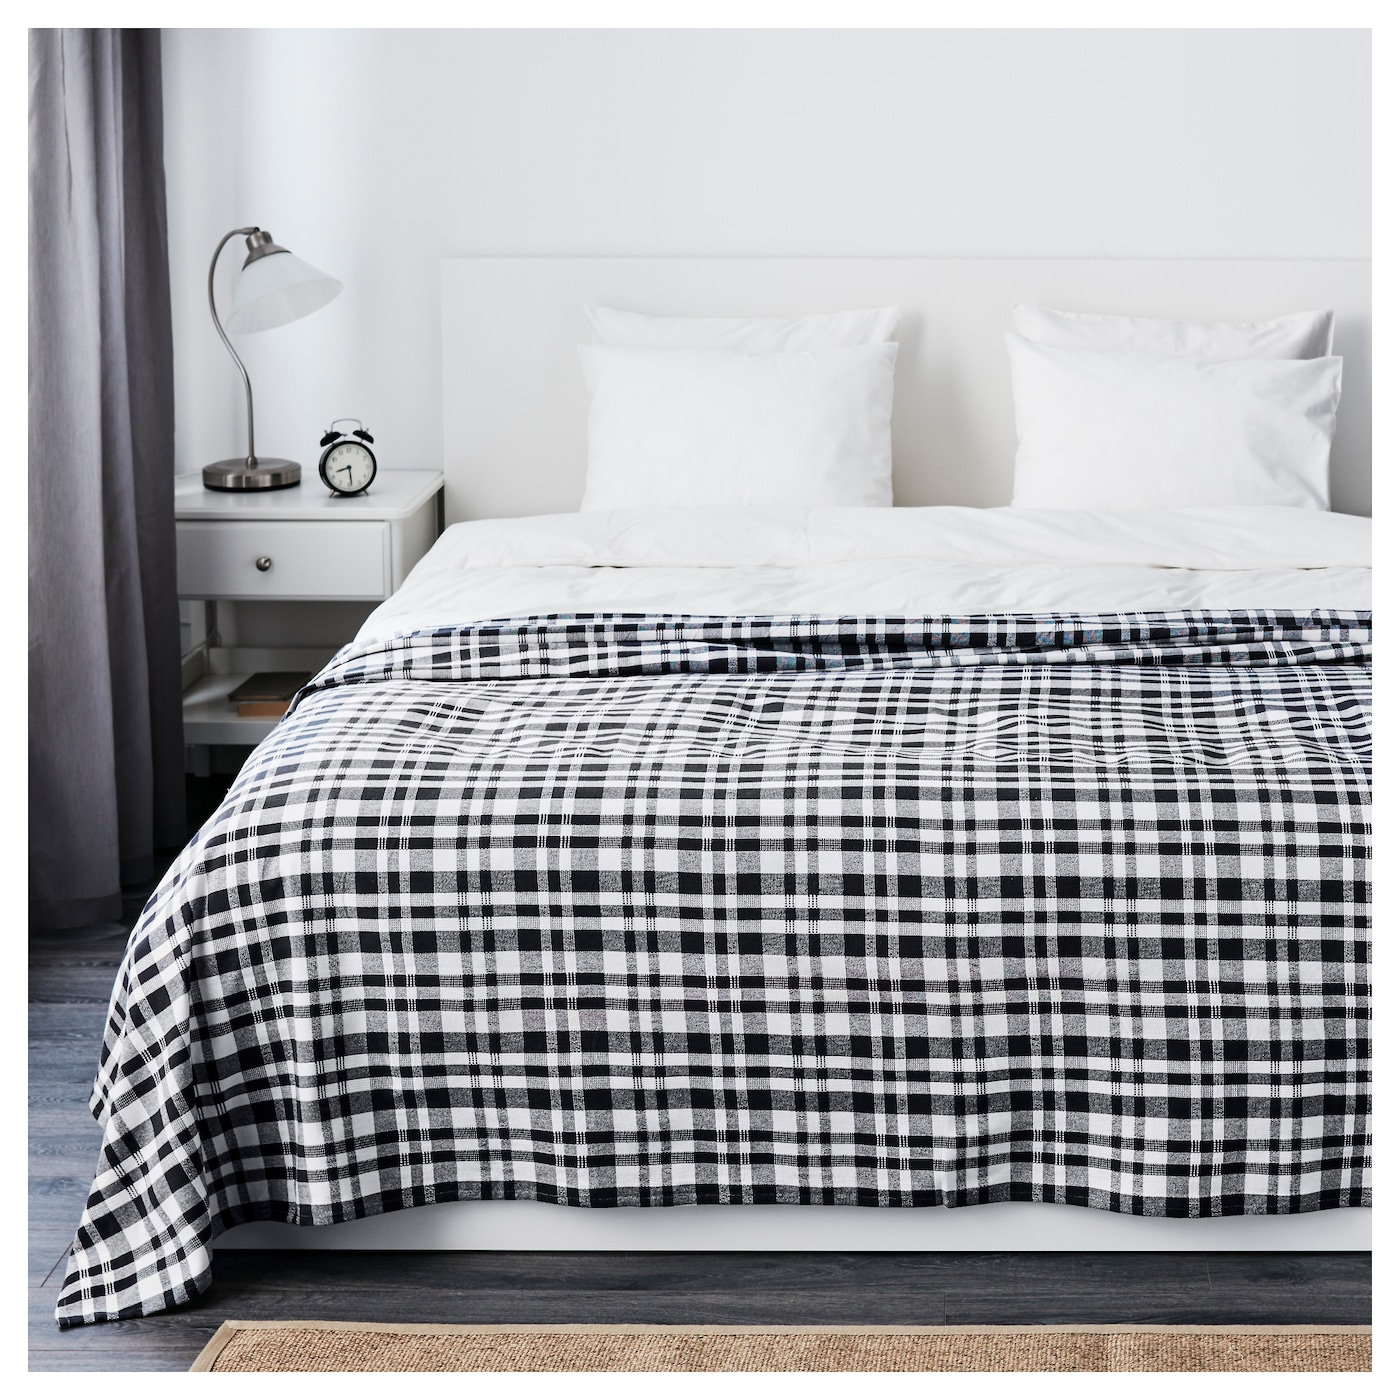 IKEA BACKVIAL bedspread Woven from thick and thin yarn; adds life and texture to the bedspread.